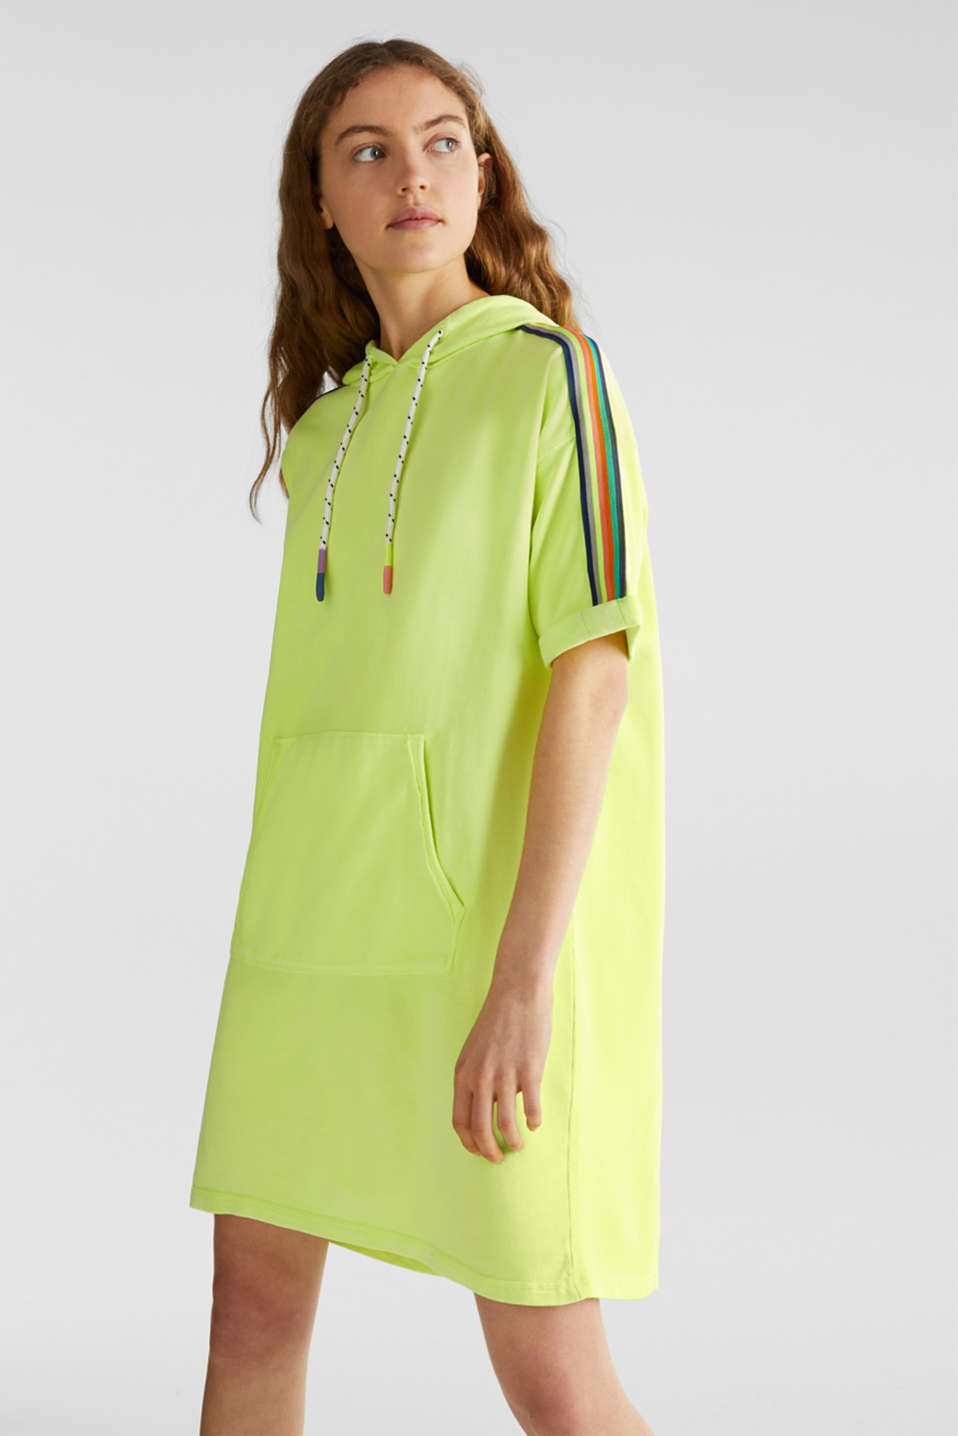 edc - NEON sweatshirt dress with stripes, 100% cotton